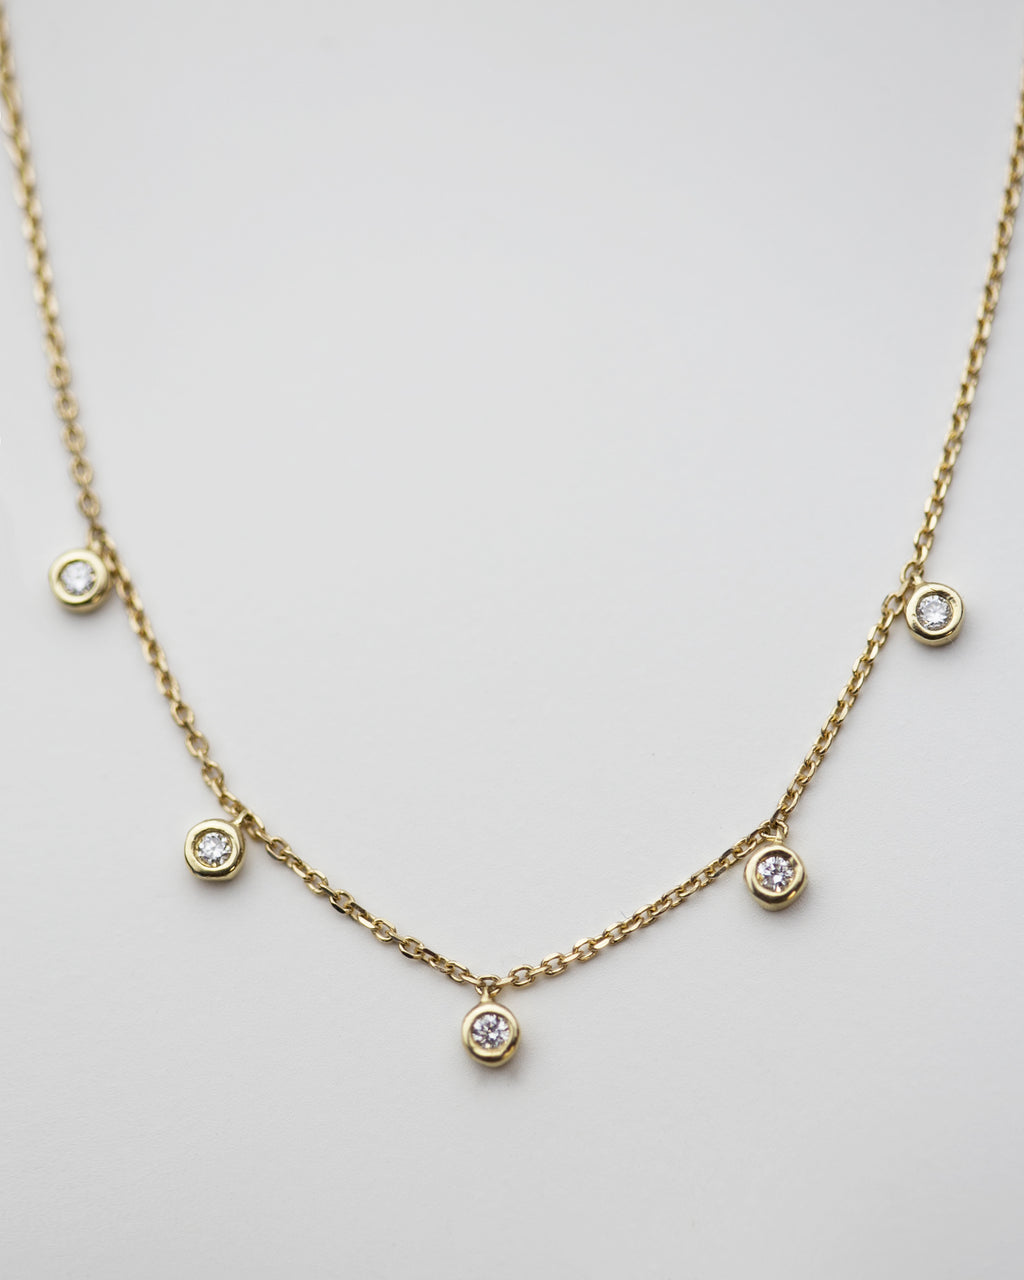 5 Diamond Bezel Charm Necklace